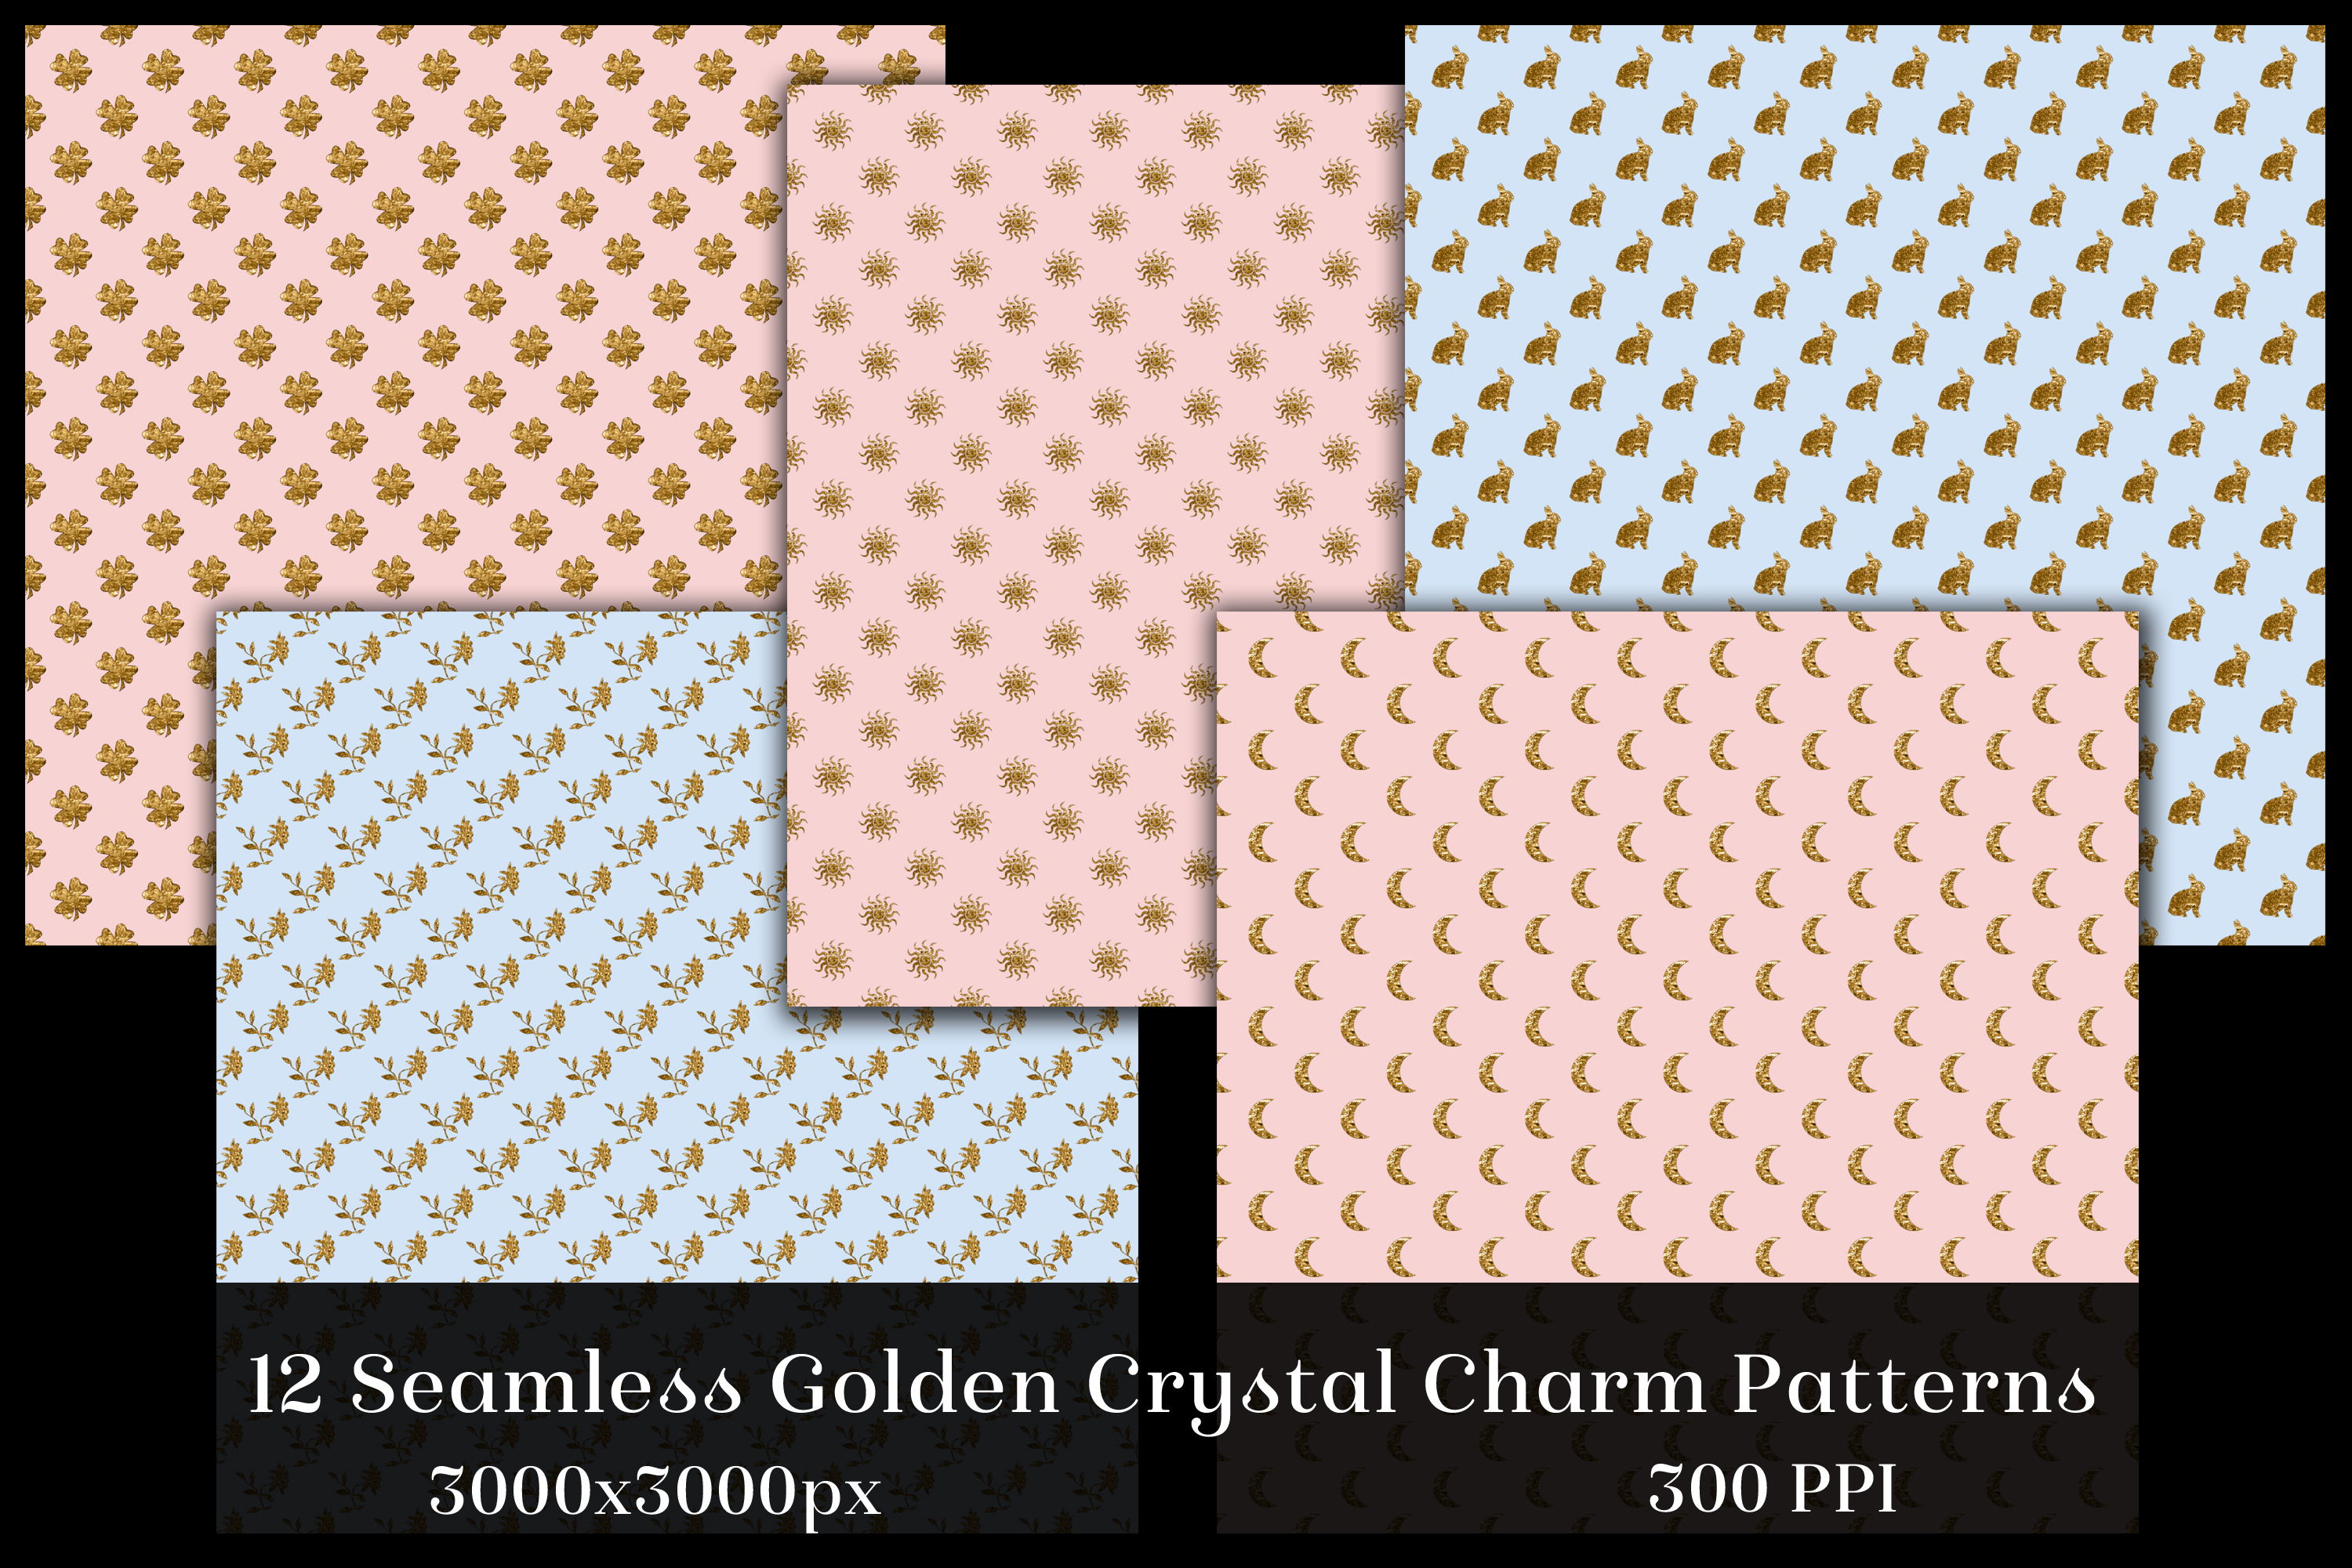 Seamless Golden Crystal Charm Patterns - 12 Images example image 2